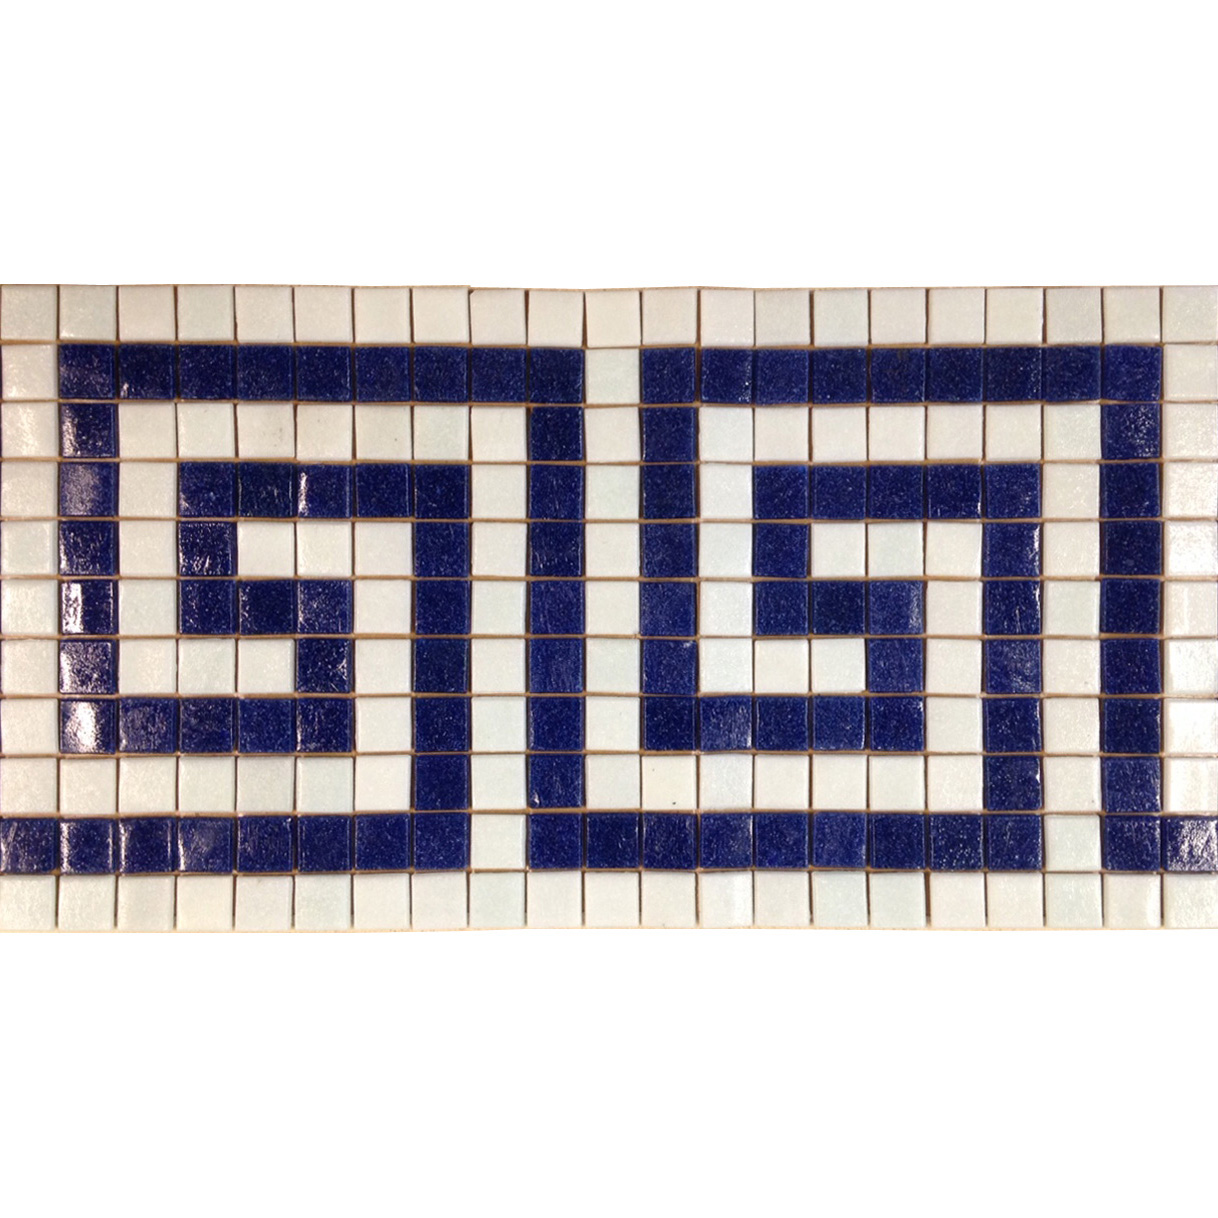 "Laberinth Greek Key Glass Mosaic Waterline or Border 9"" High, 1 Lineal Foot"